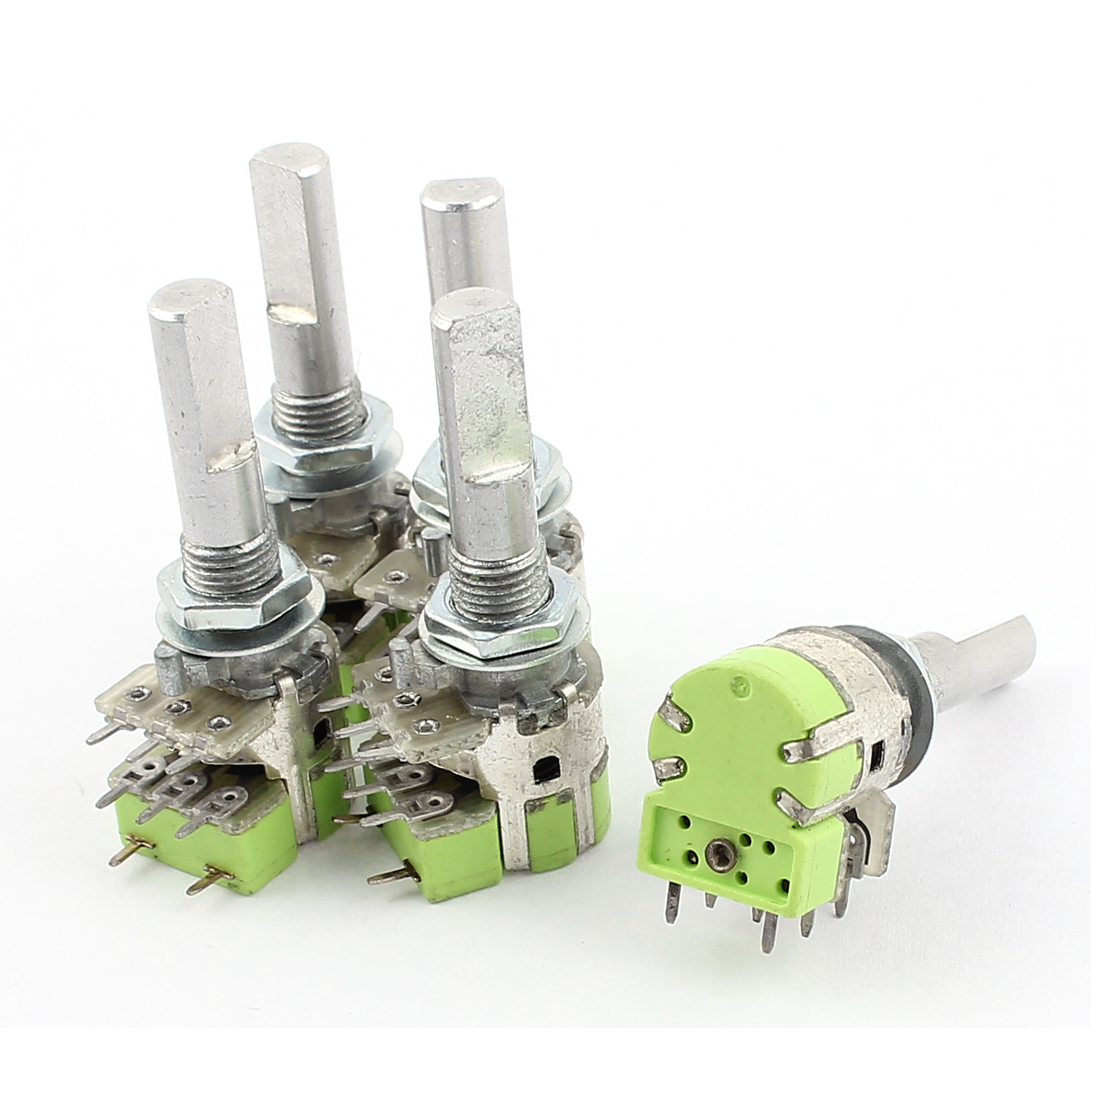 UXCELL Material 5Pcs Stereo B50k 50K Ohm Dual Linear Taper Volume Control Potentiometer Switch electronic metal